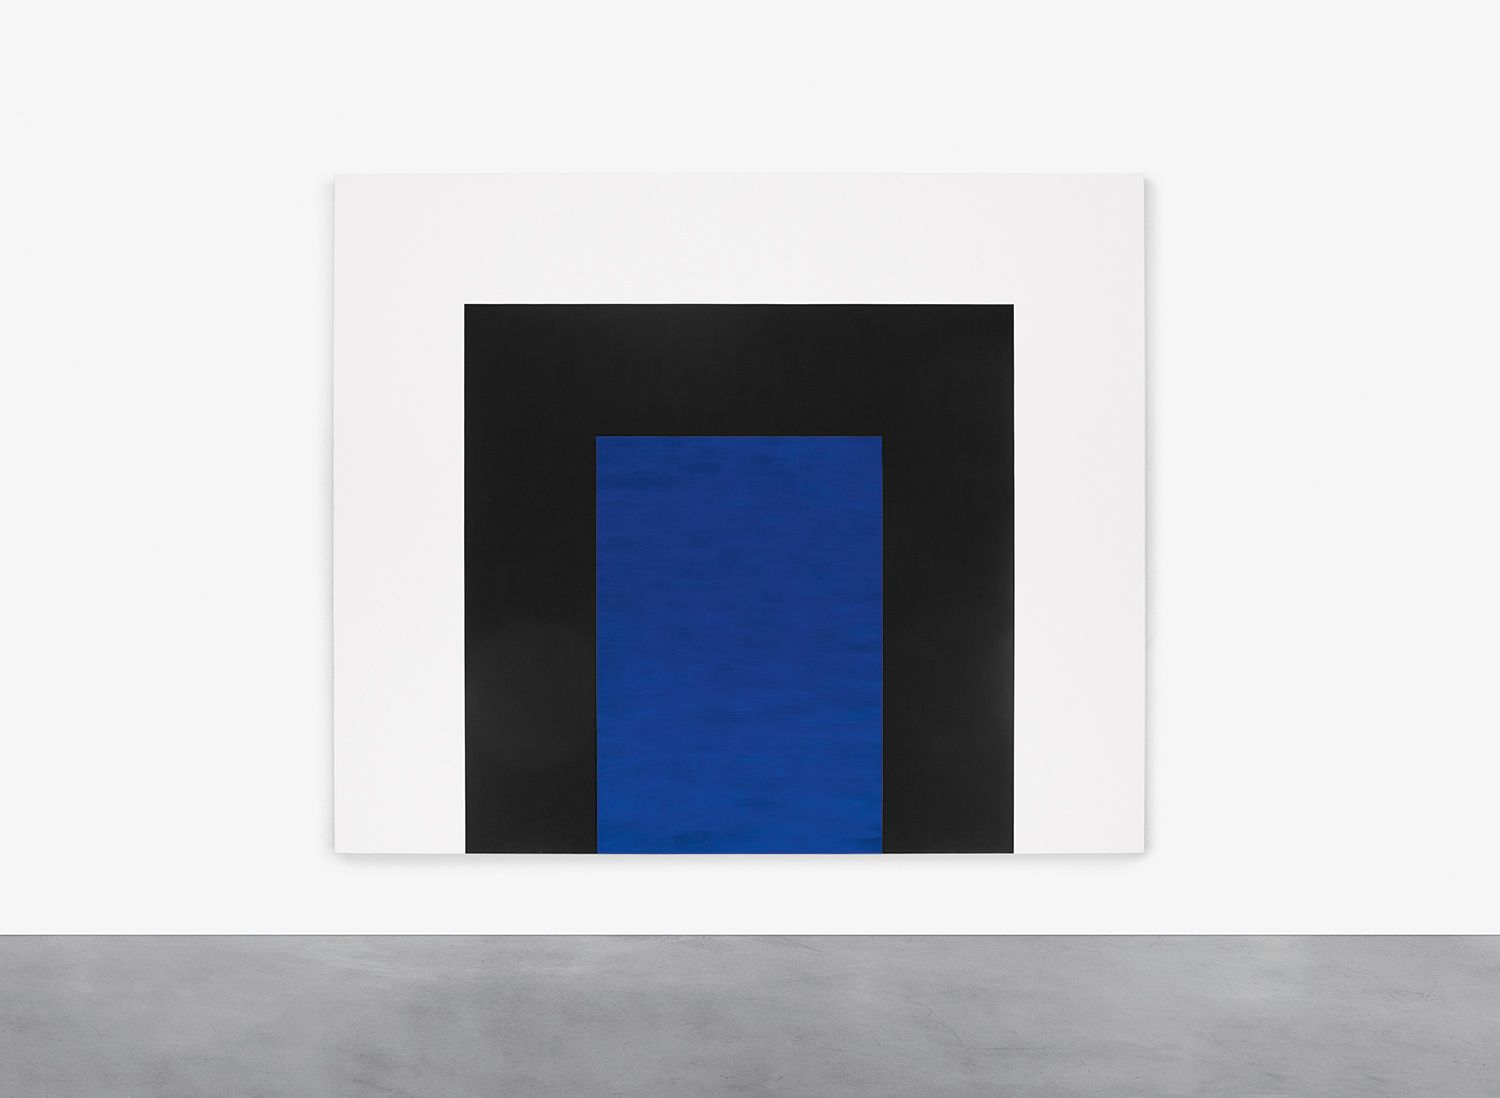 Mary Corse, Untitled (Blue Double Arch), 1998